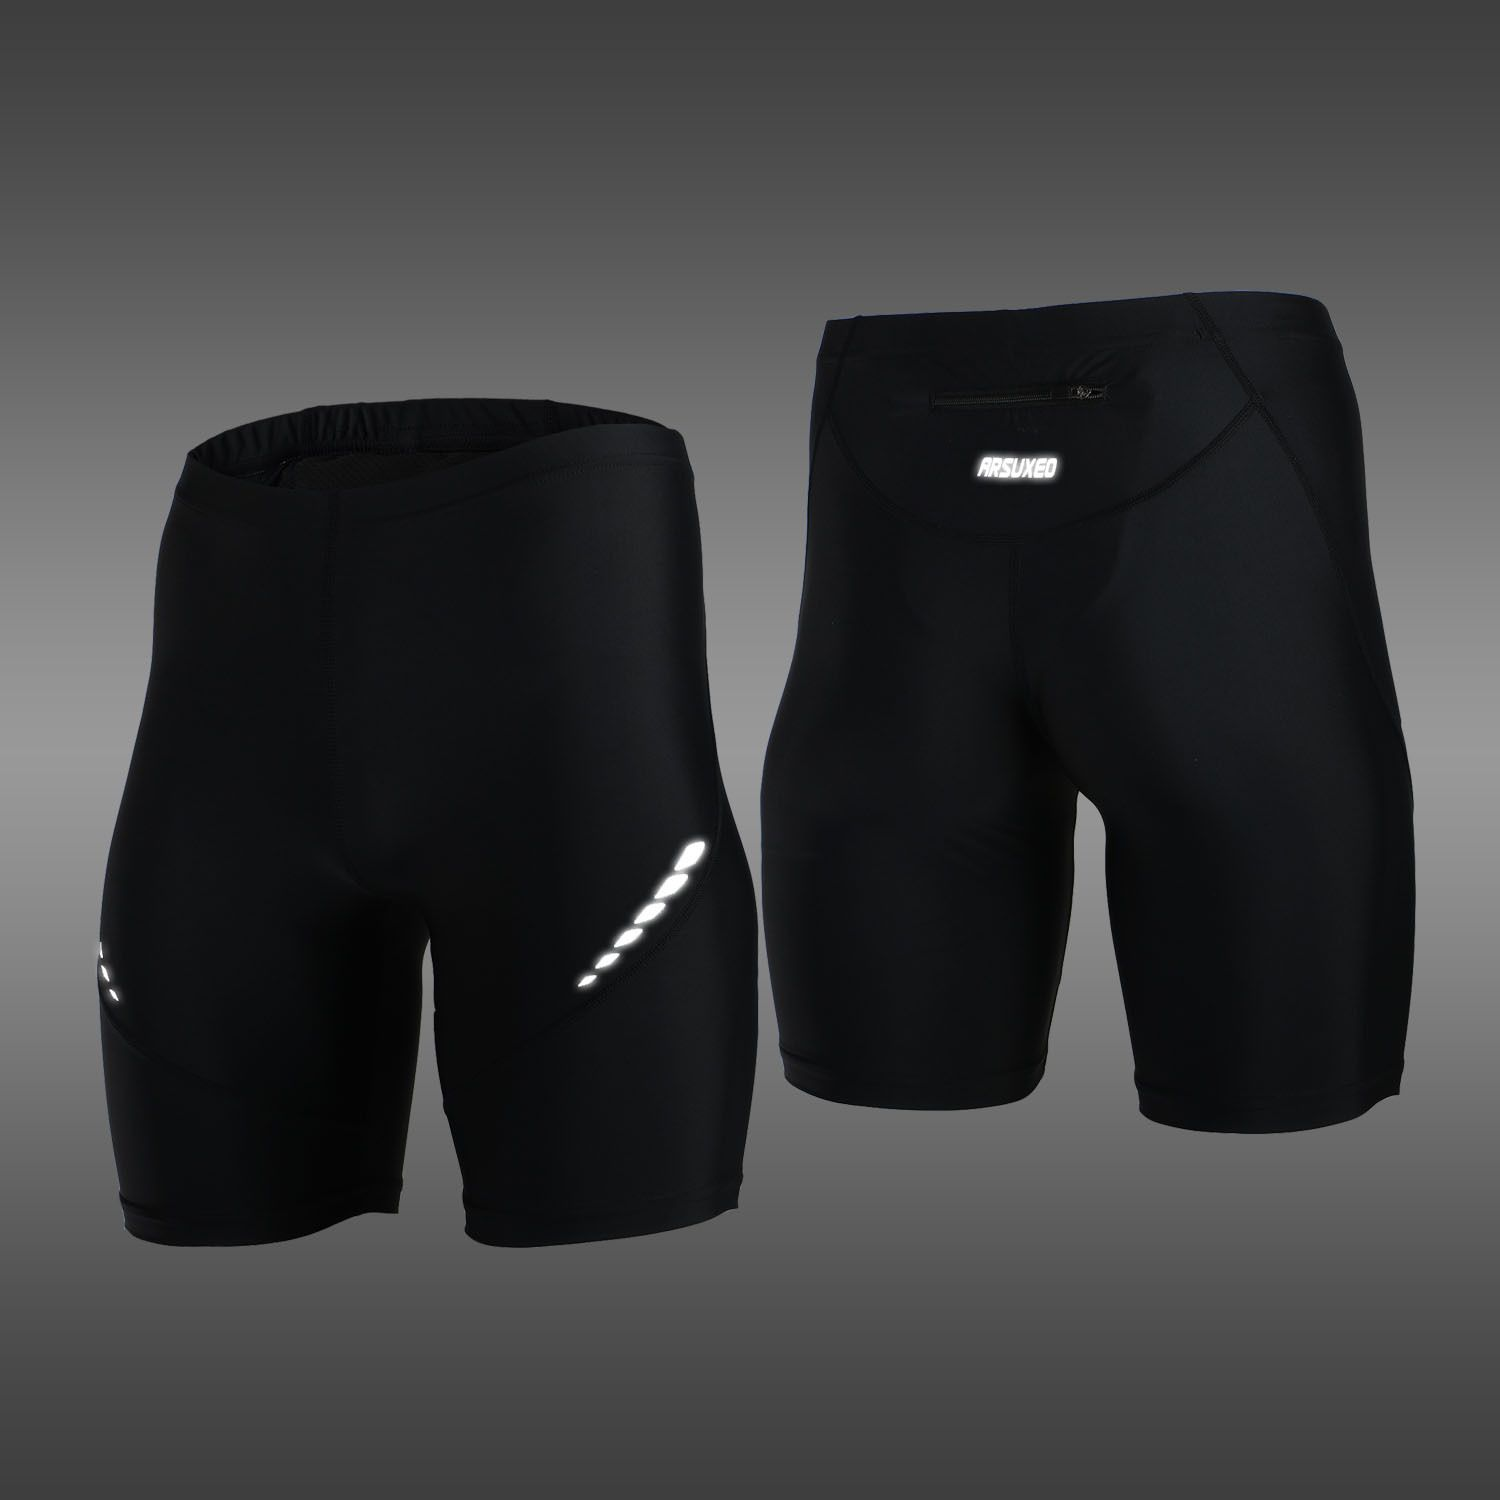 Pro Hommes de Collants Running Court Réfléchissant À Séchage Rapide Élastique Sport Leggings Compression Gym Fitness Shorts D'été pantalons de Survêtement